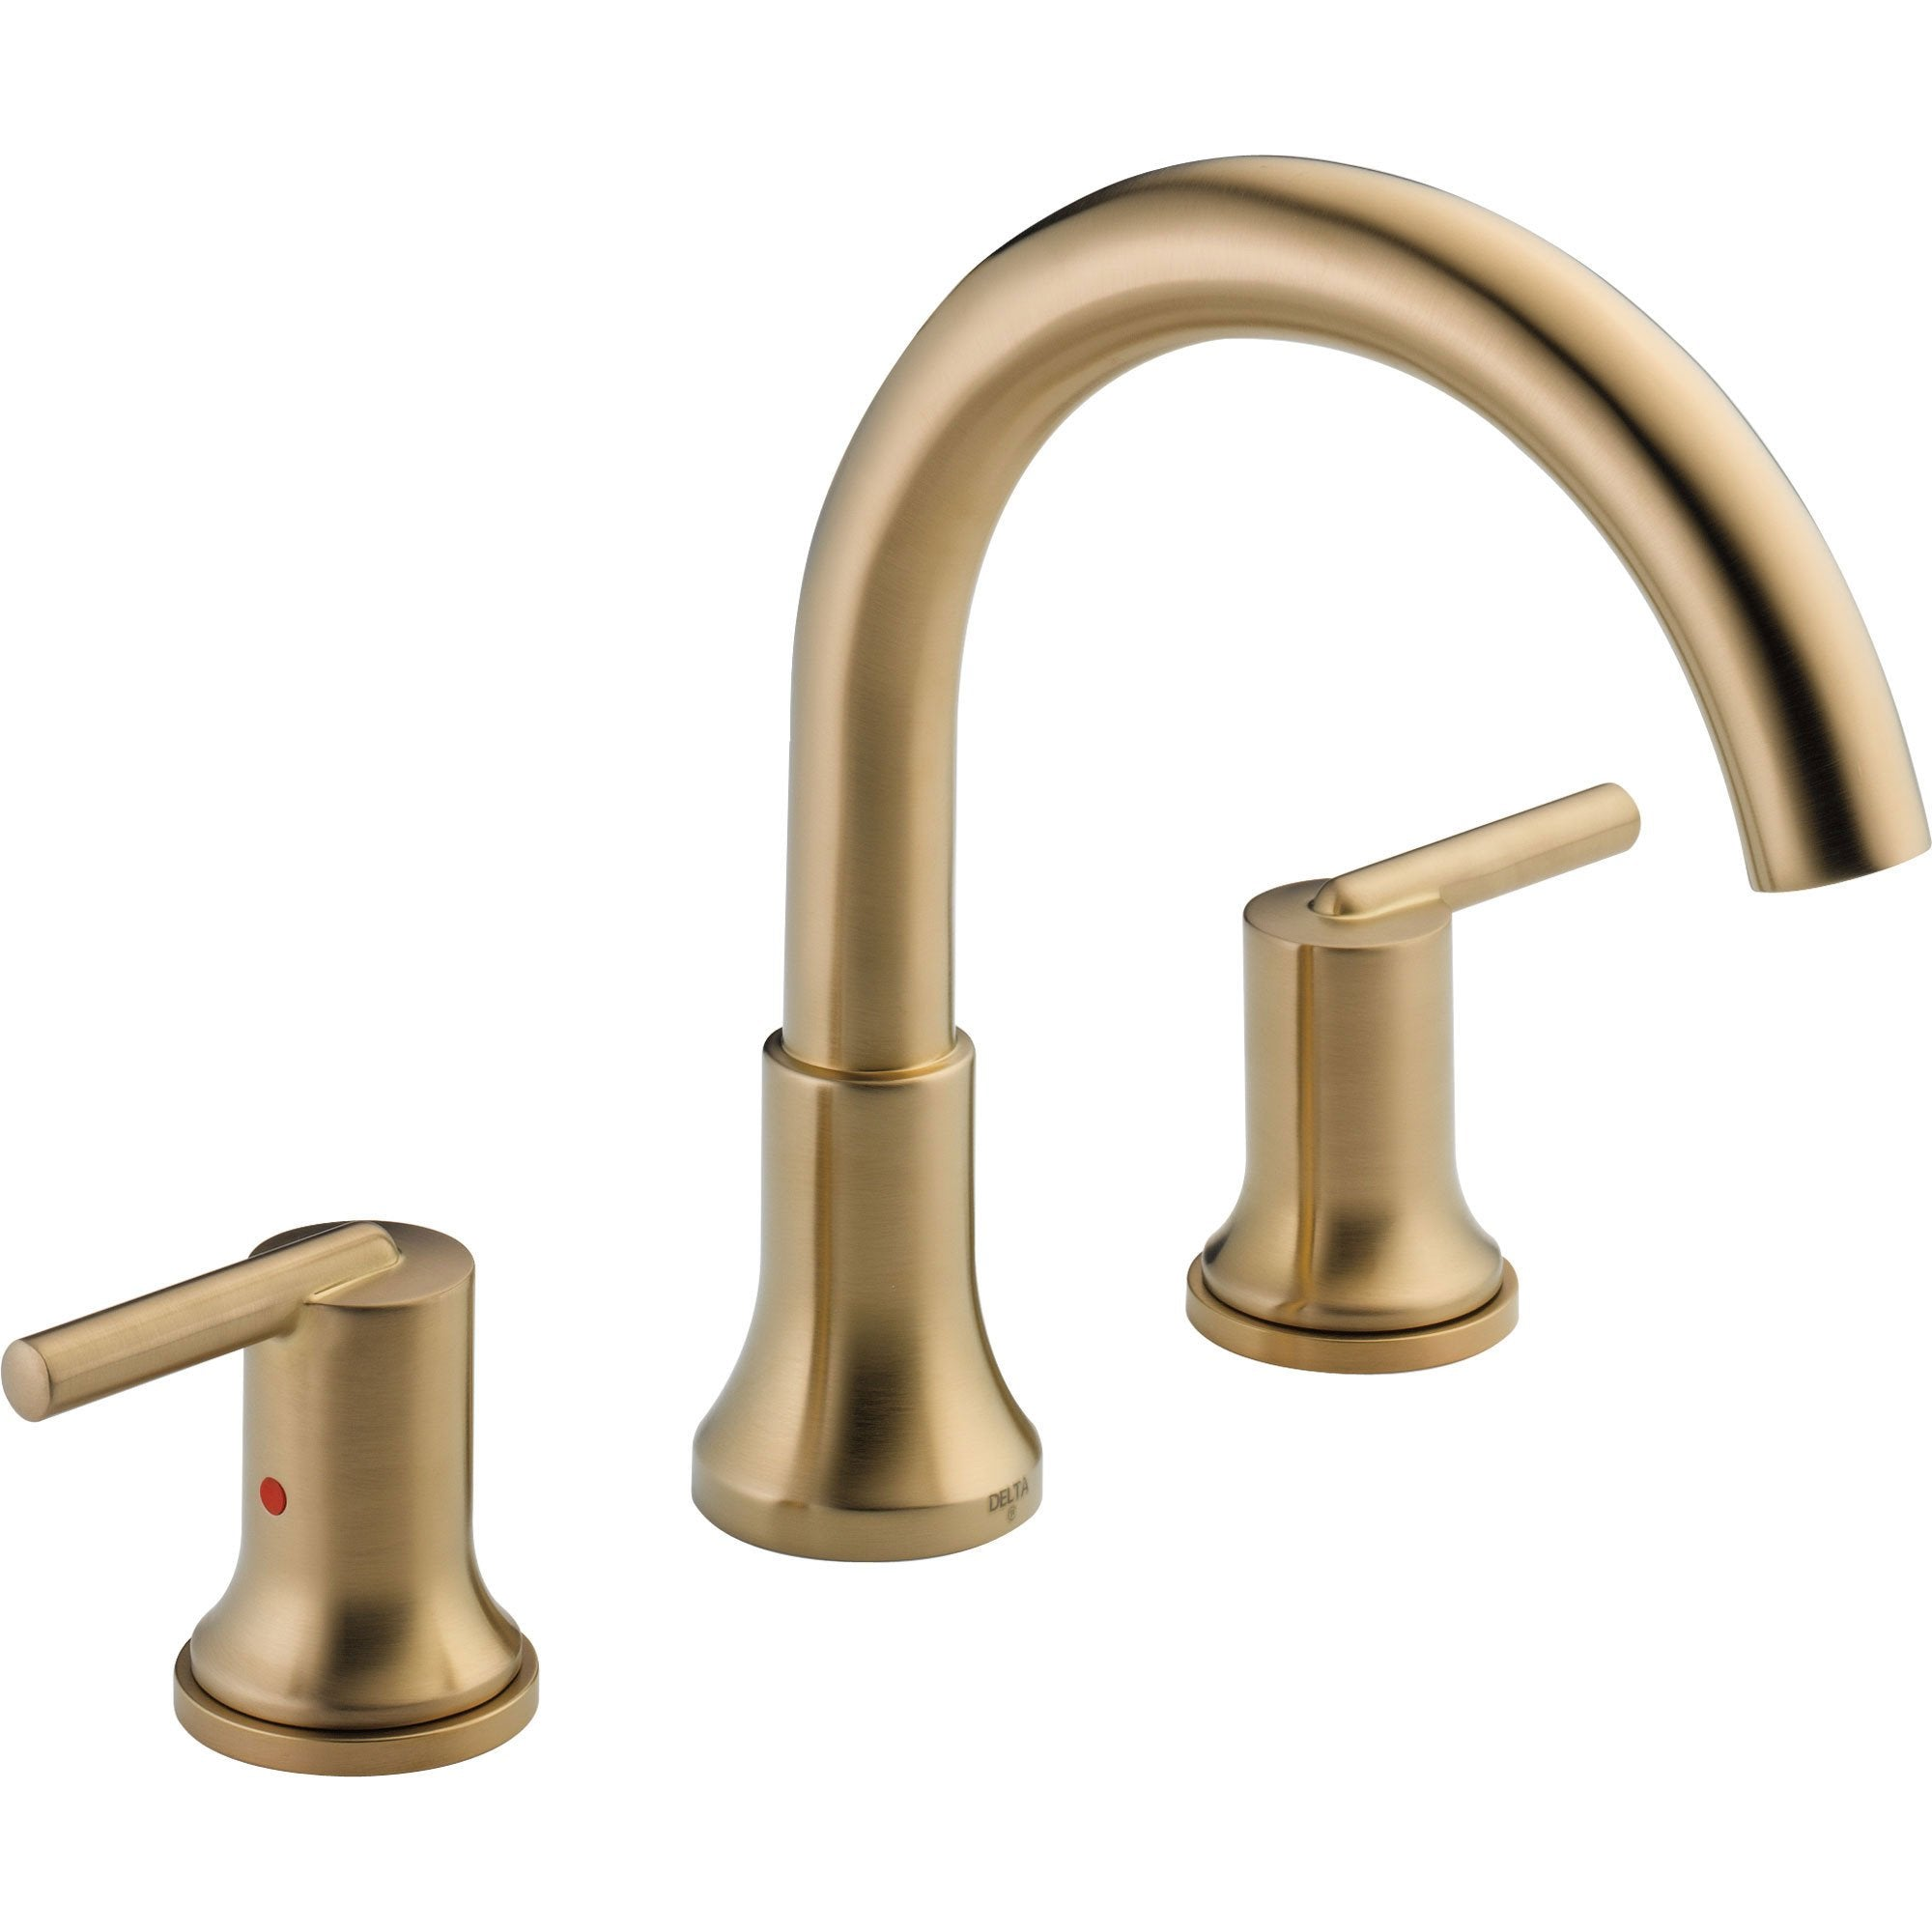 Delta Trinsic Modern Champagne Bronze Roman Tub Filler Faucet with Valve D909V